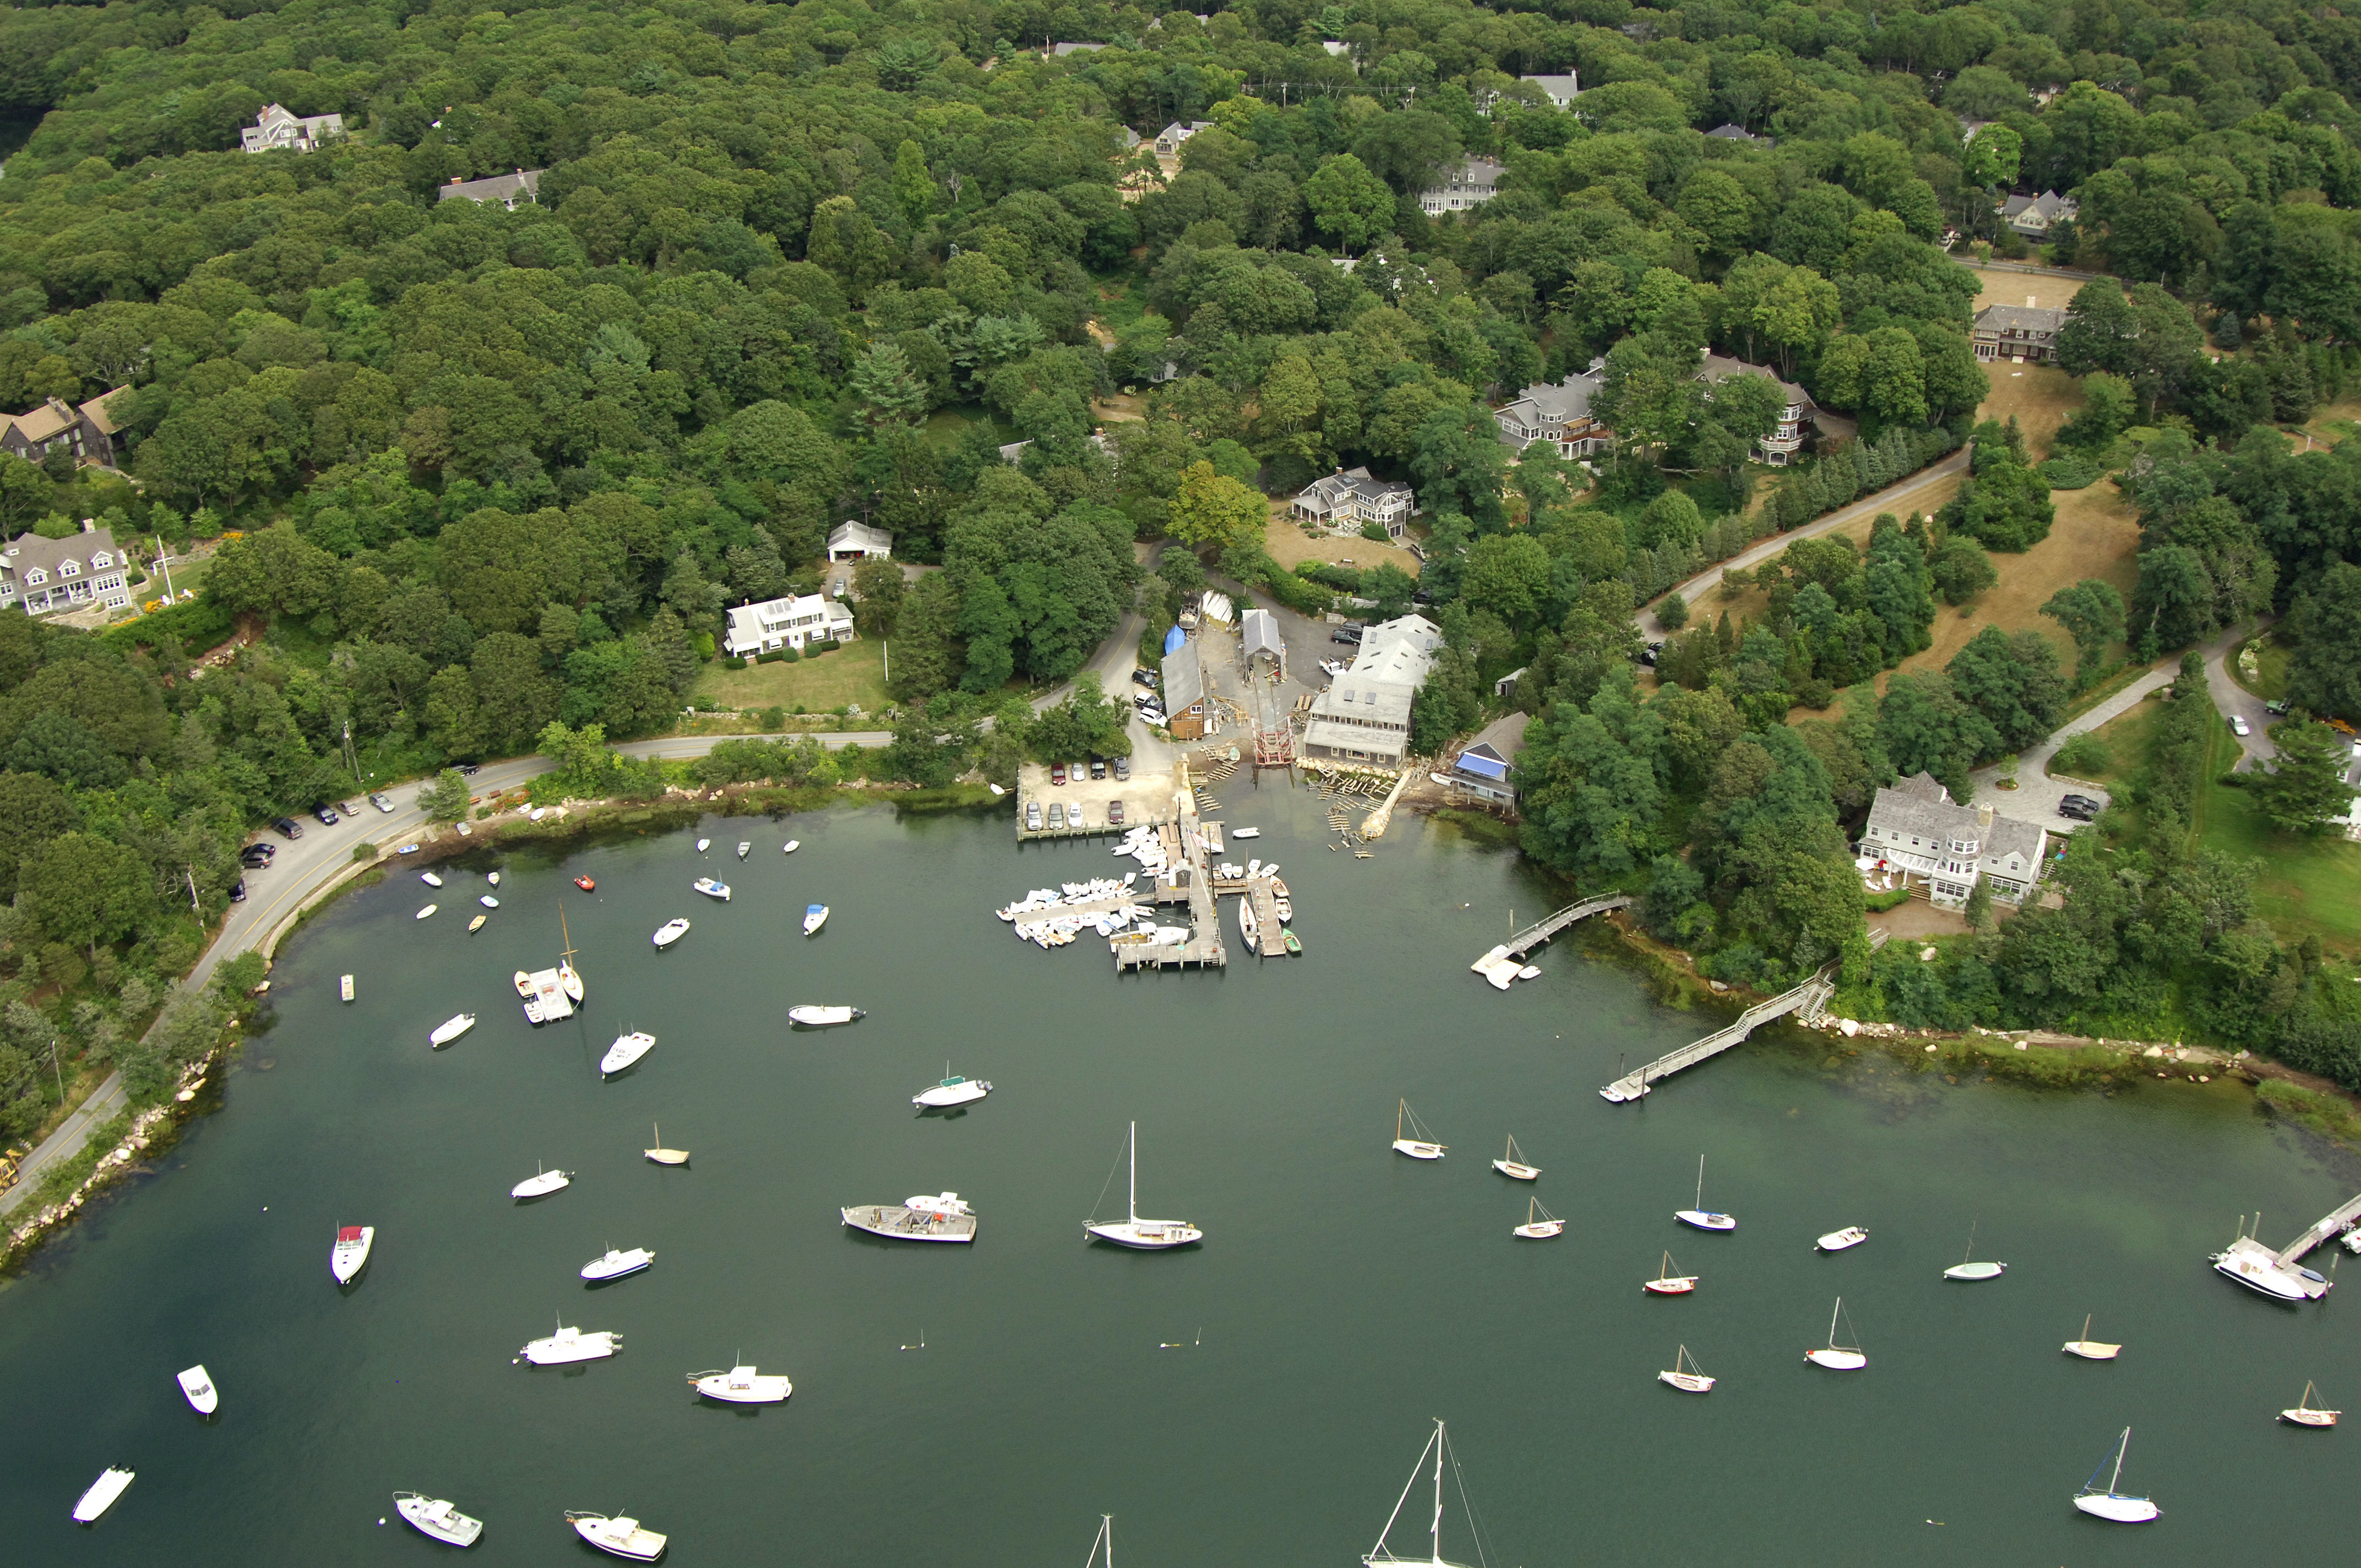 Quissett harbor boatyard inc in falmouth ma united states quissett harbor boatyard inc in falmouth ma united states marina reviews phone number marinas geenschuldenfo Gallery